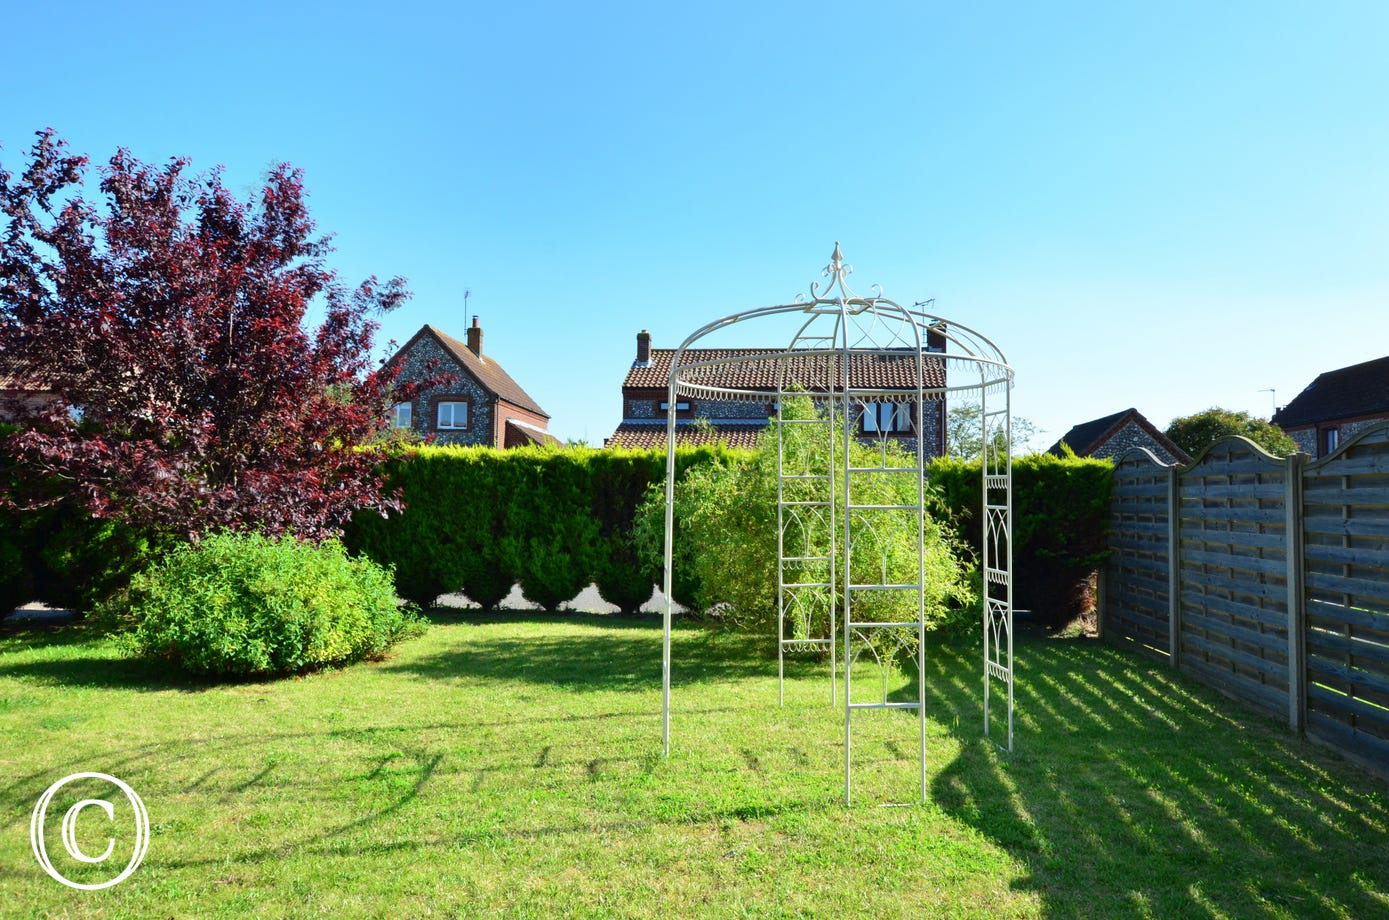 There is a fully enclosed rear garden, which is ideal for children and pets